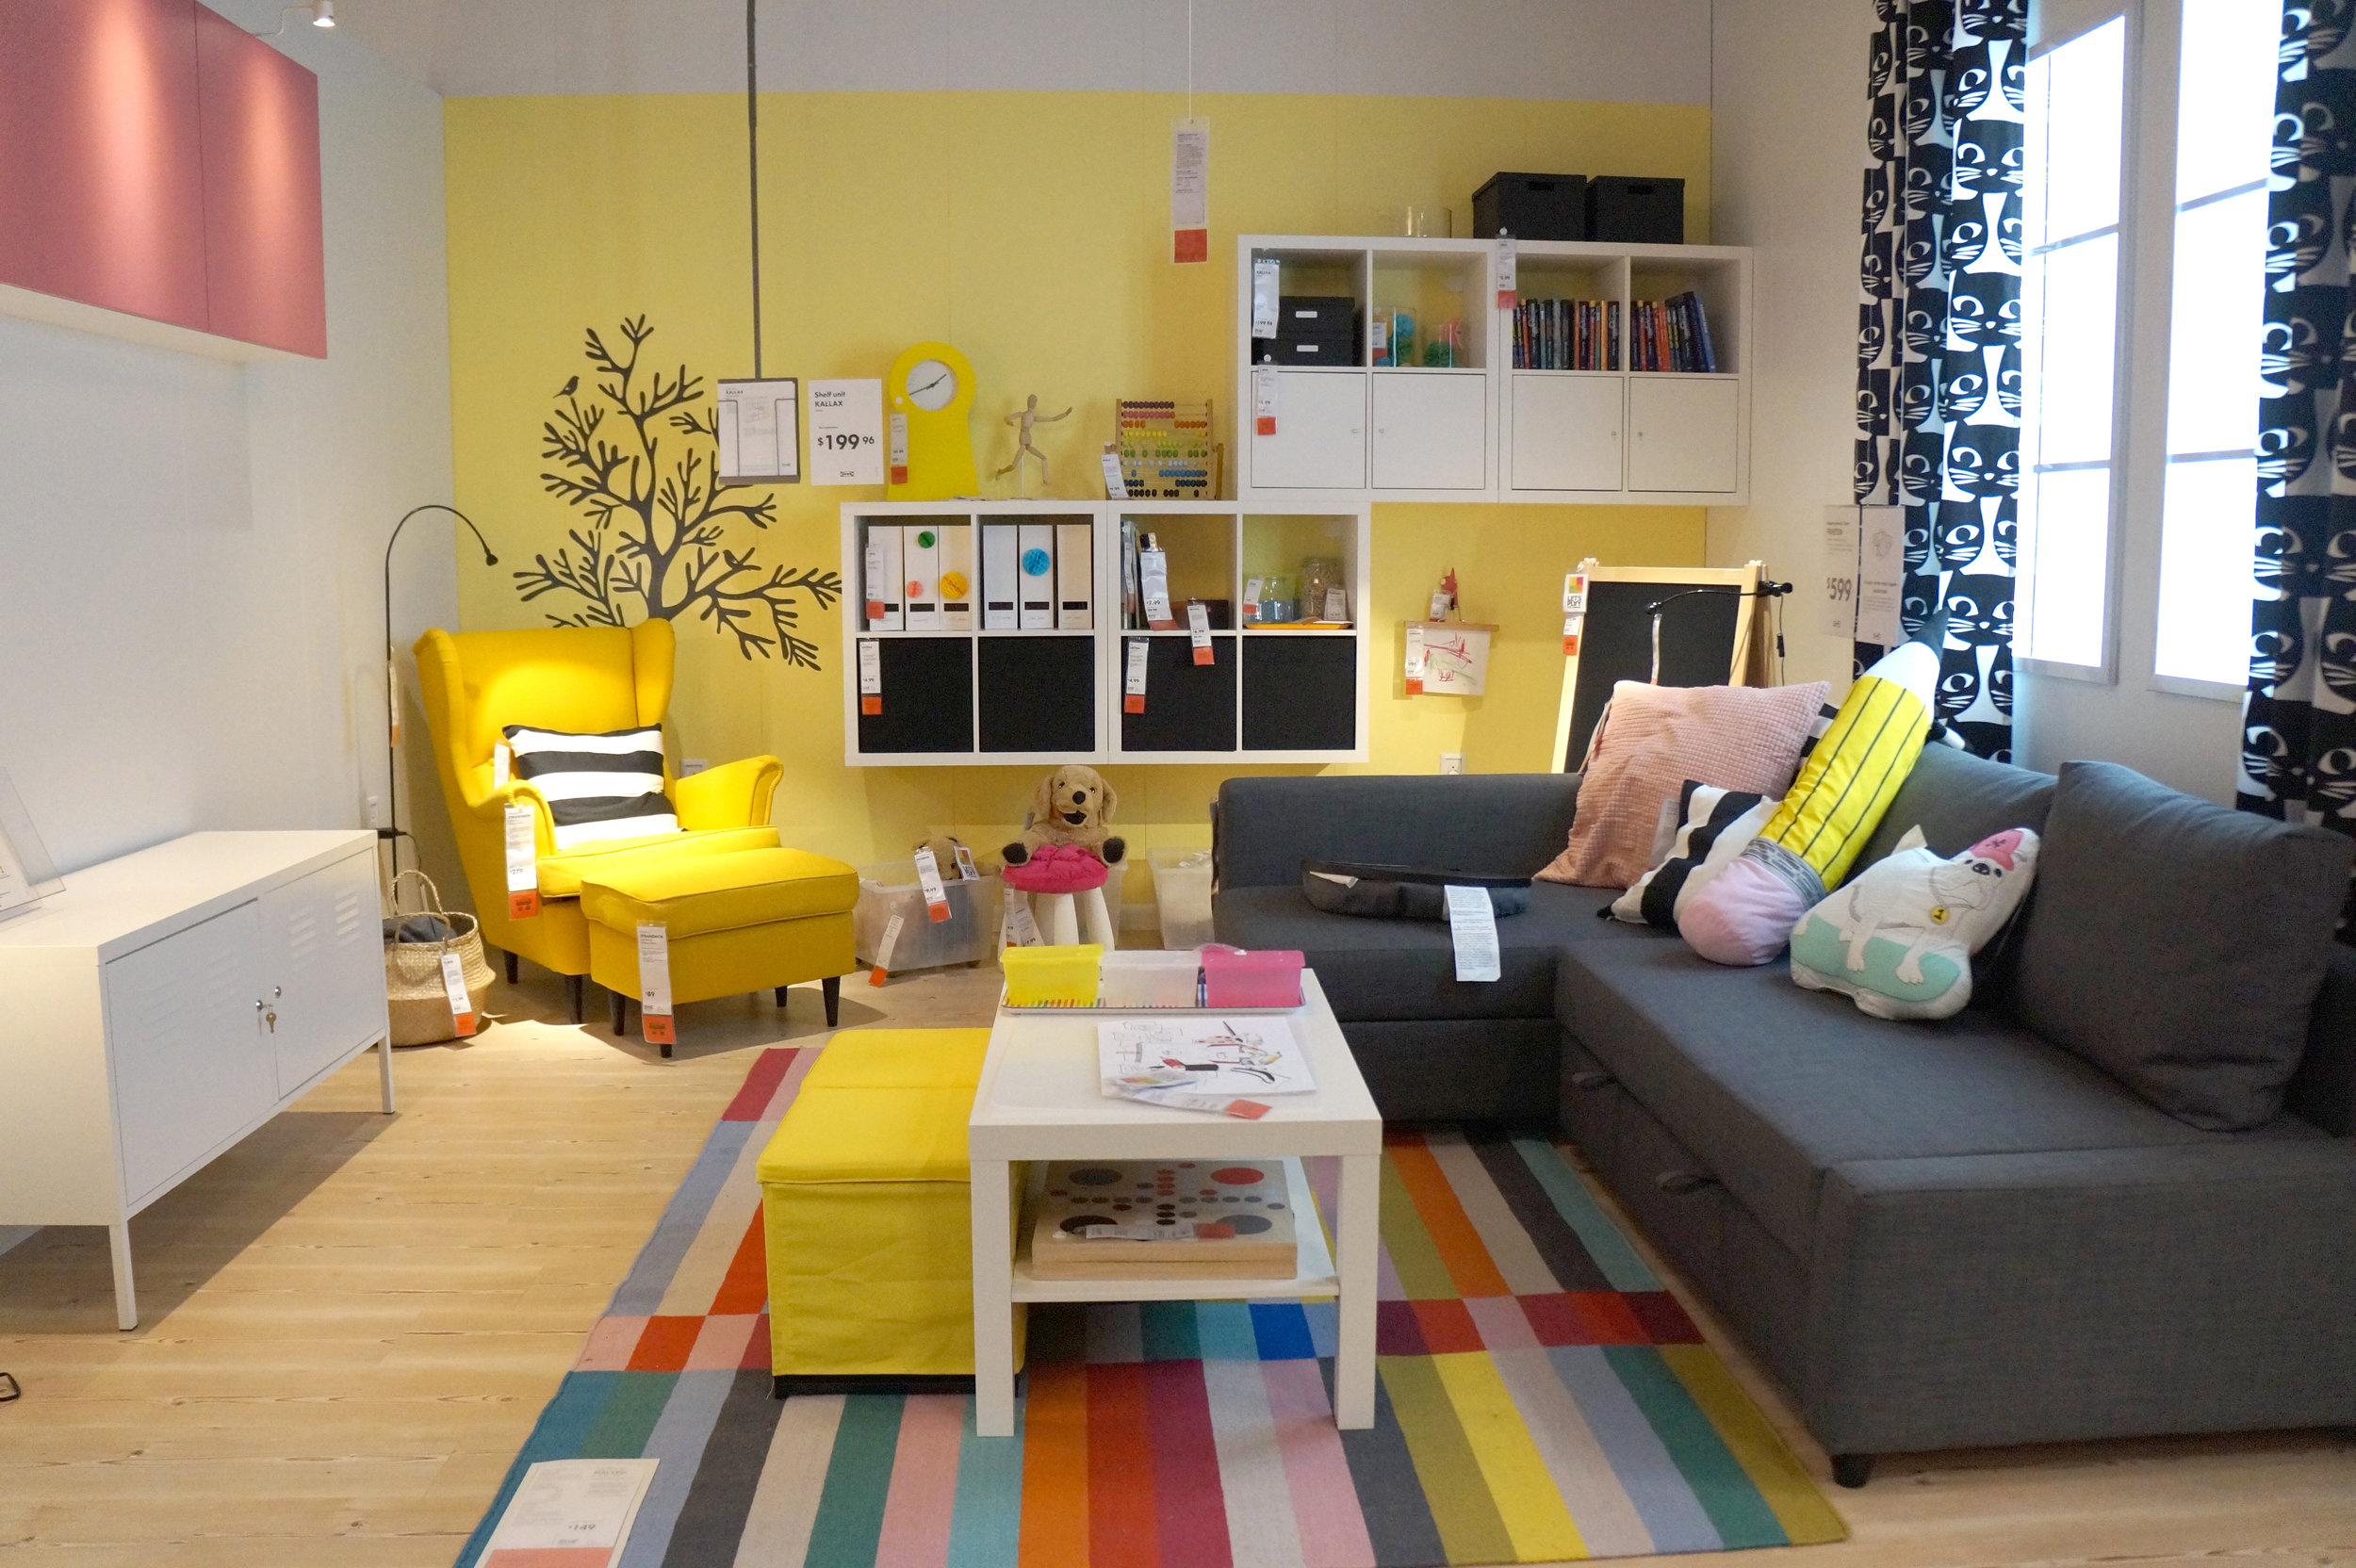 Andrea Fenise visits Ikea Memphis for Media and Press Day as a Memphis blogger